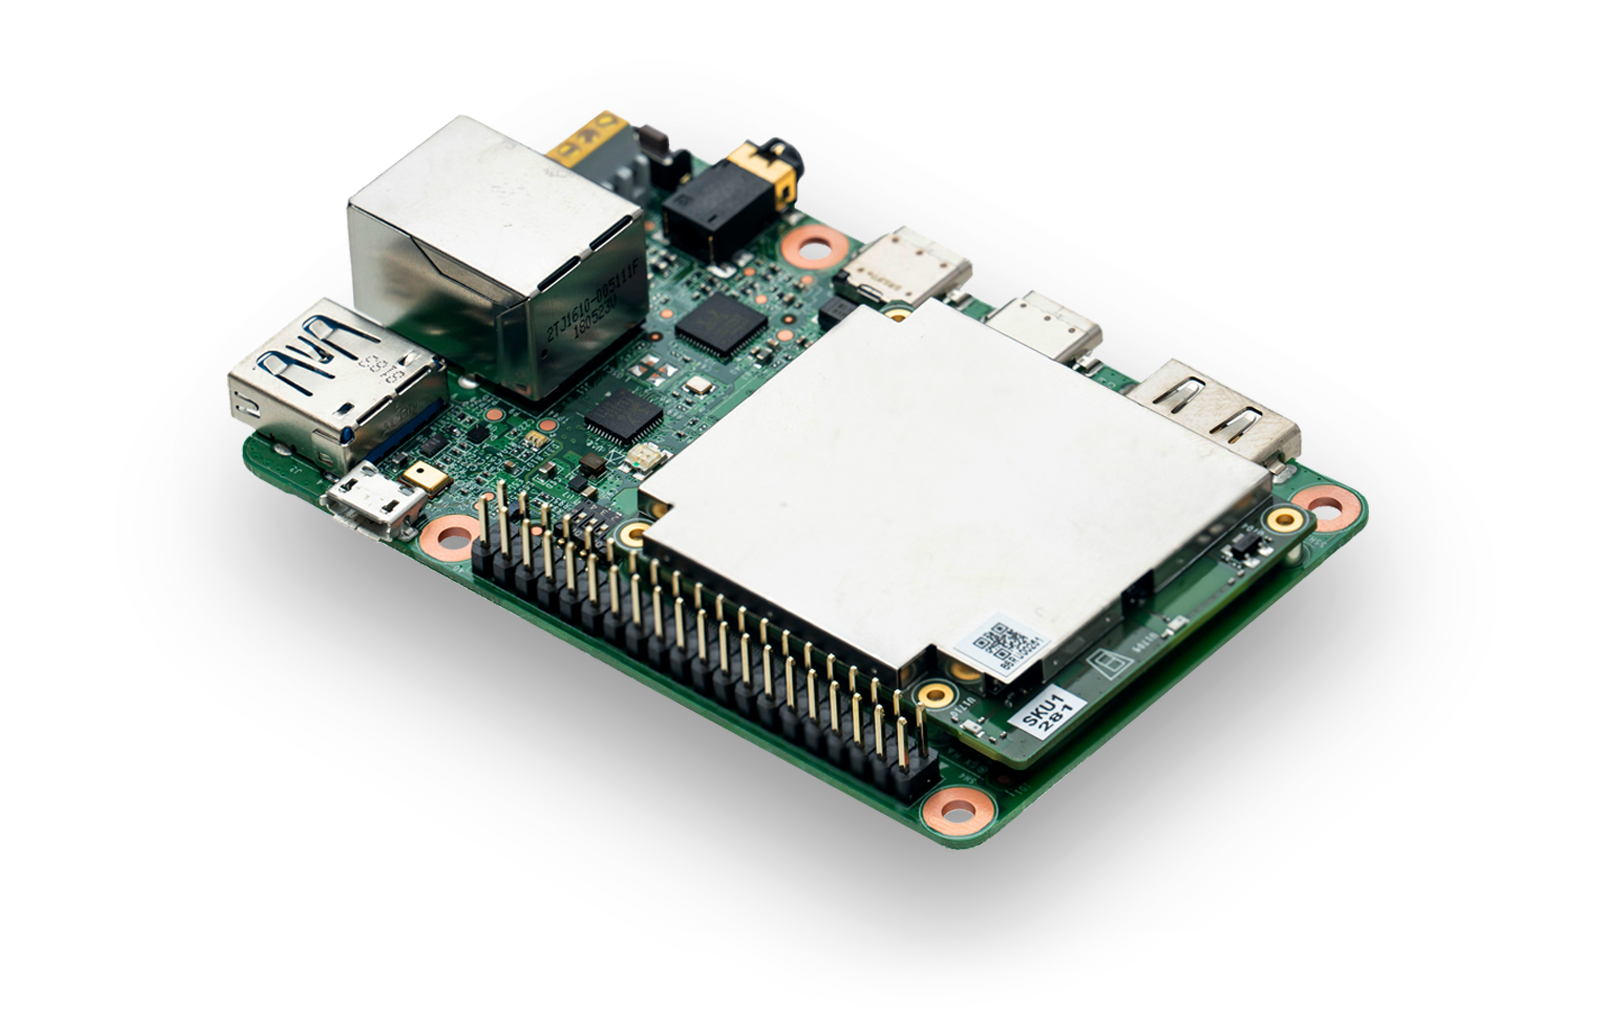 Edge Tpu Devices Voice Recognition System And Embedded Controllers Dev Board